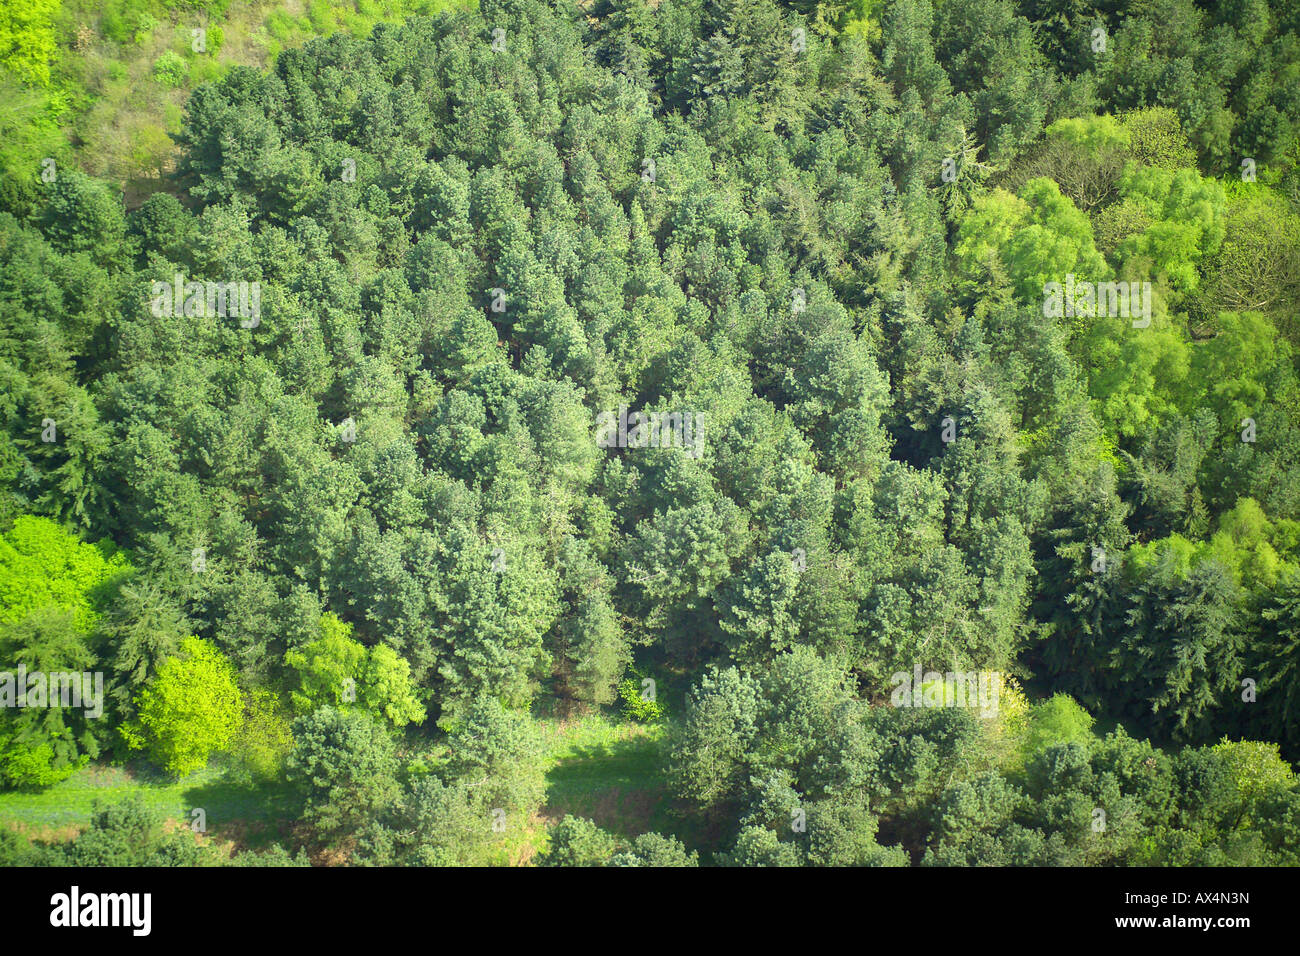 Aerial view of woodlands consisting of Coniferous Trees Stock Photo